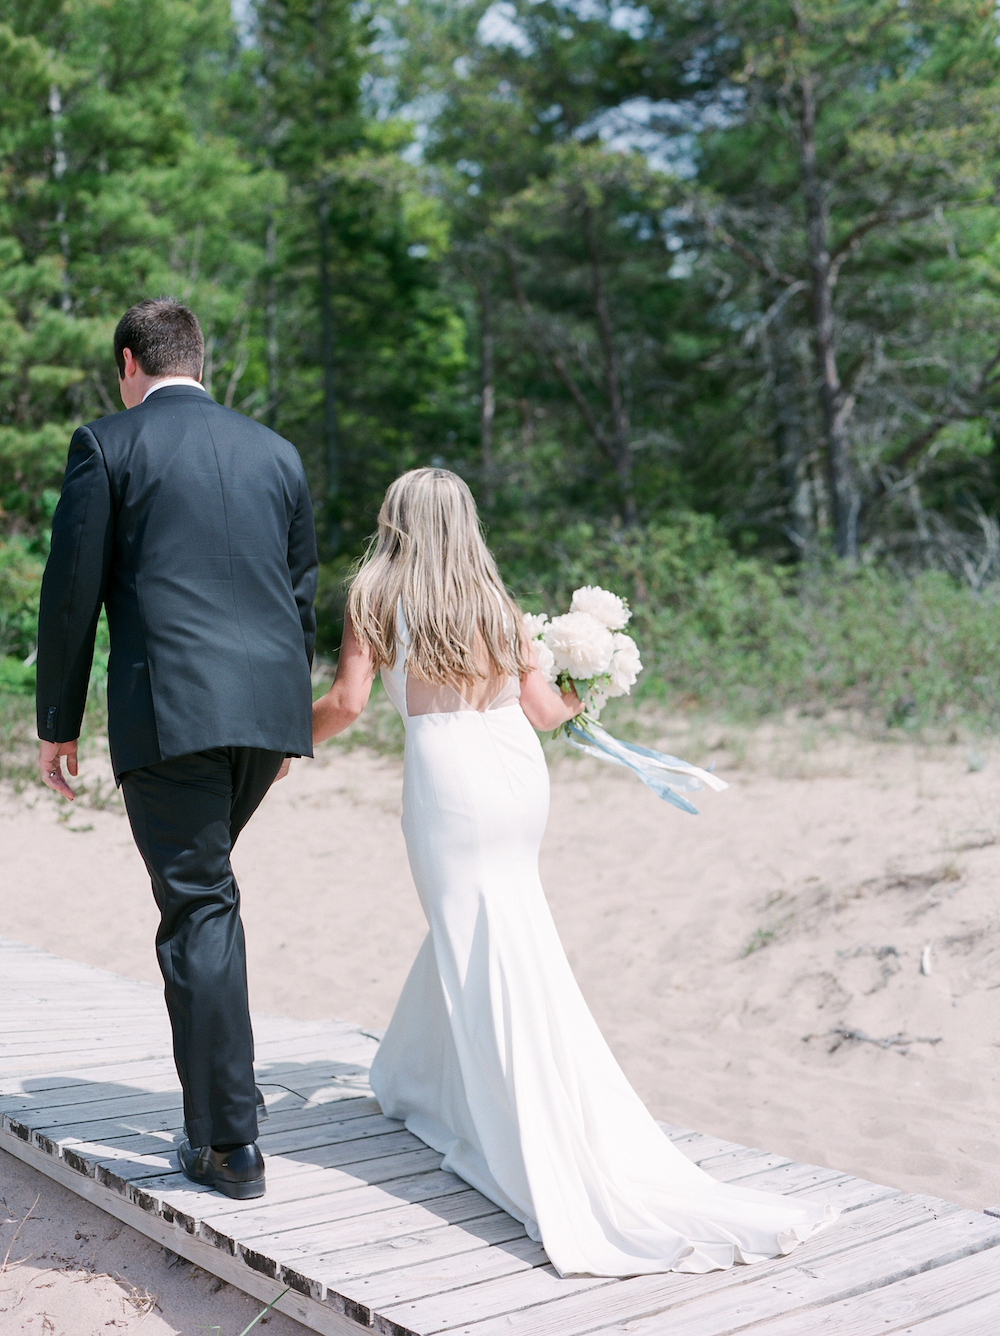 A couple walking off the beach after their wedding